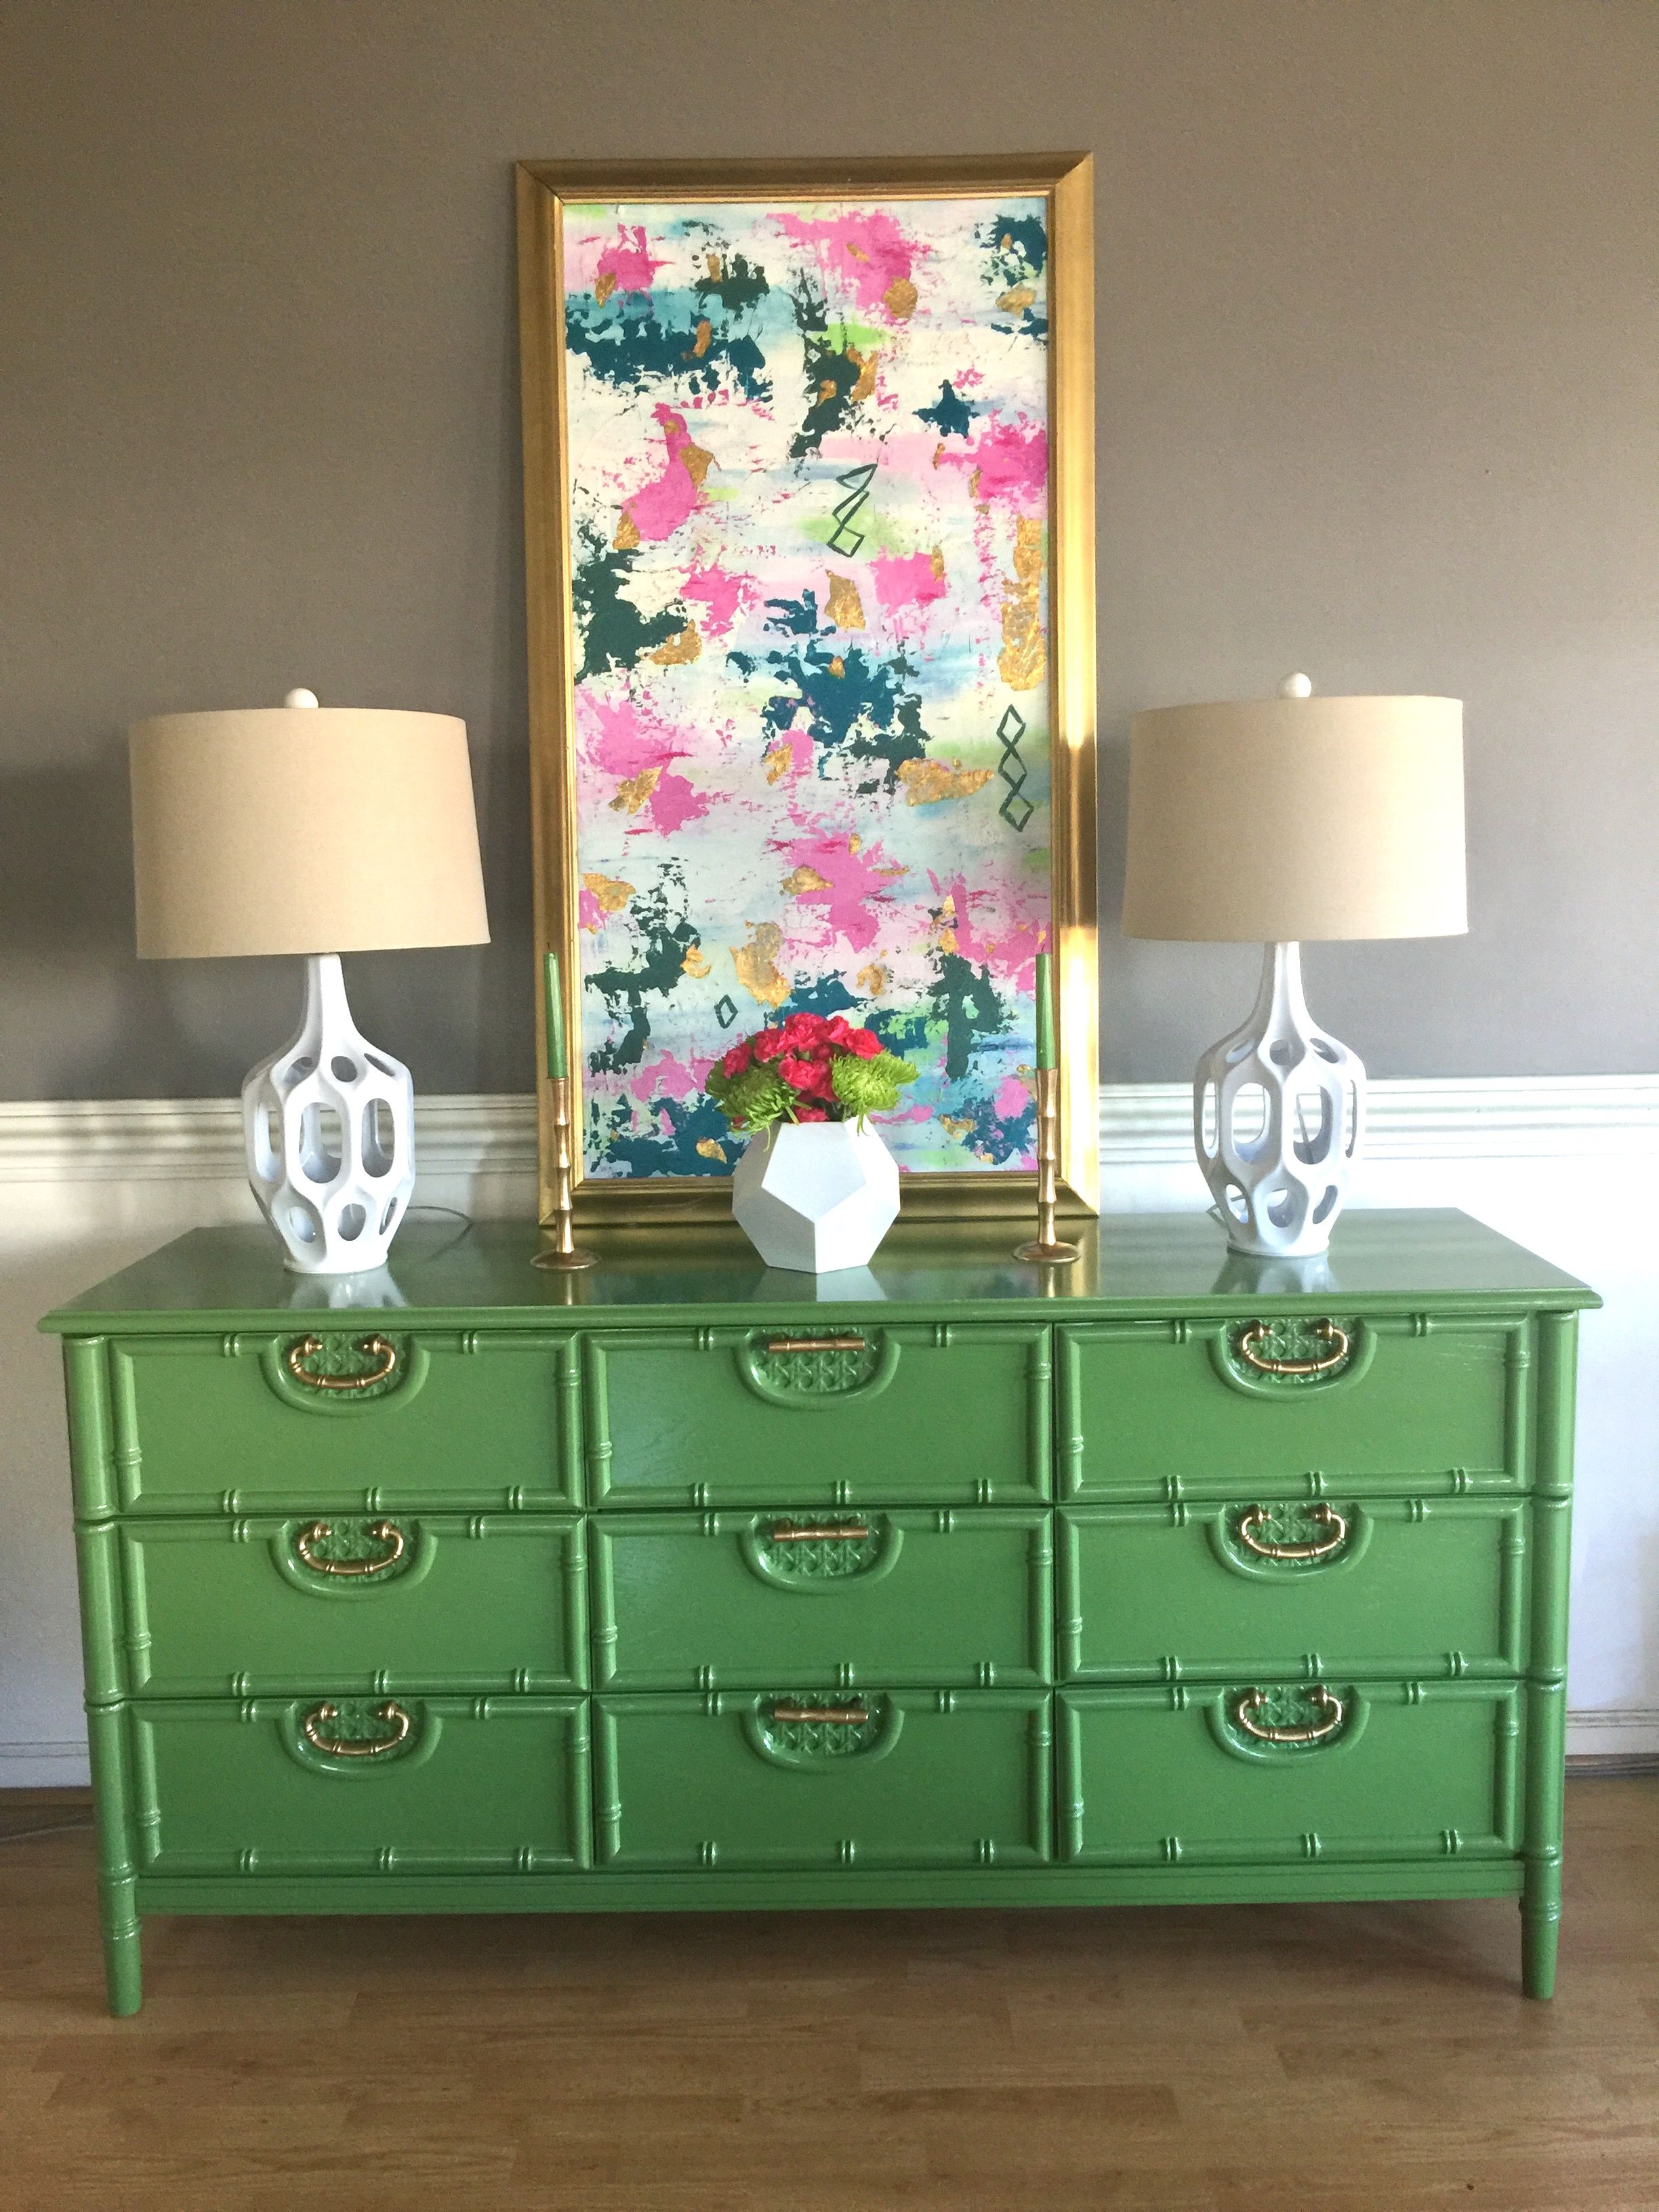 Faux Bamboo Basset Dresser Redone In Green Faux Bamboo Colorful Furniture Painted Furniture Colors [ 3264 x 2448 Pixel ]